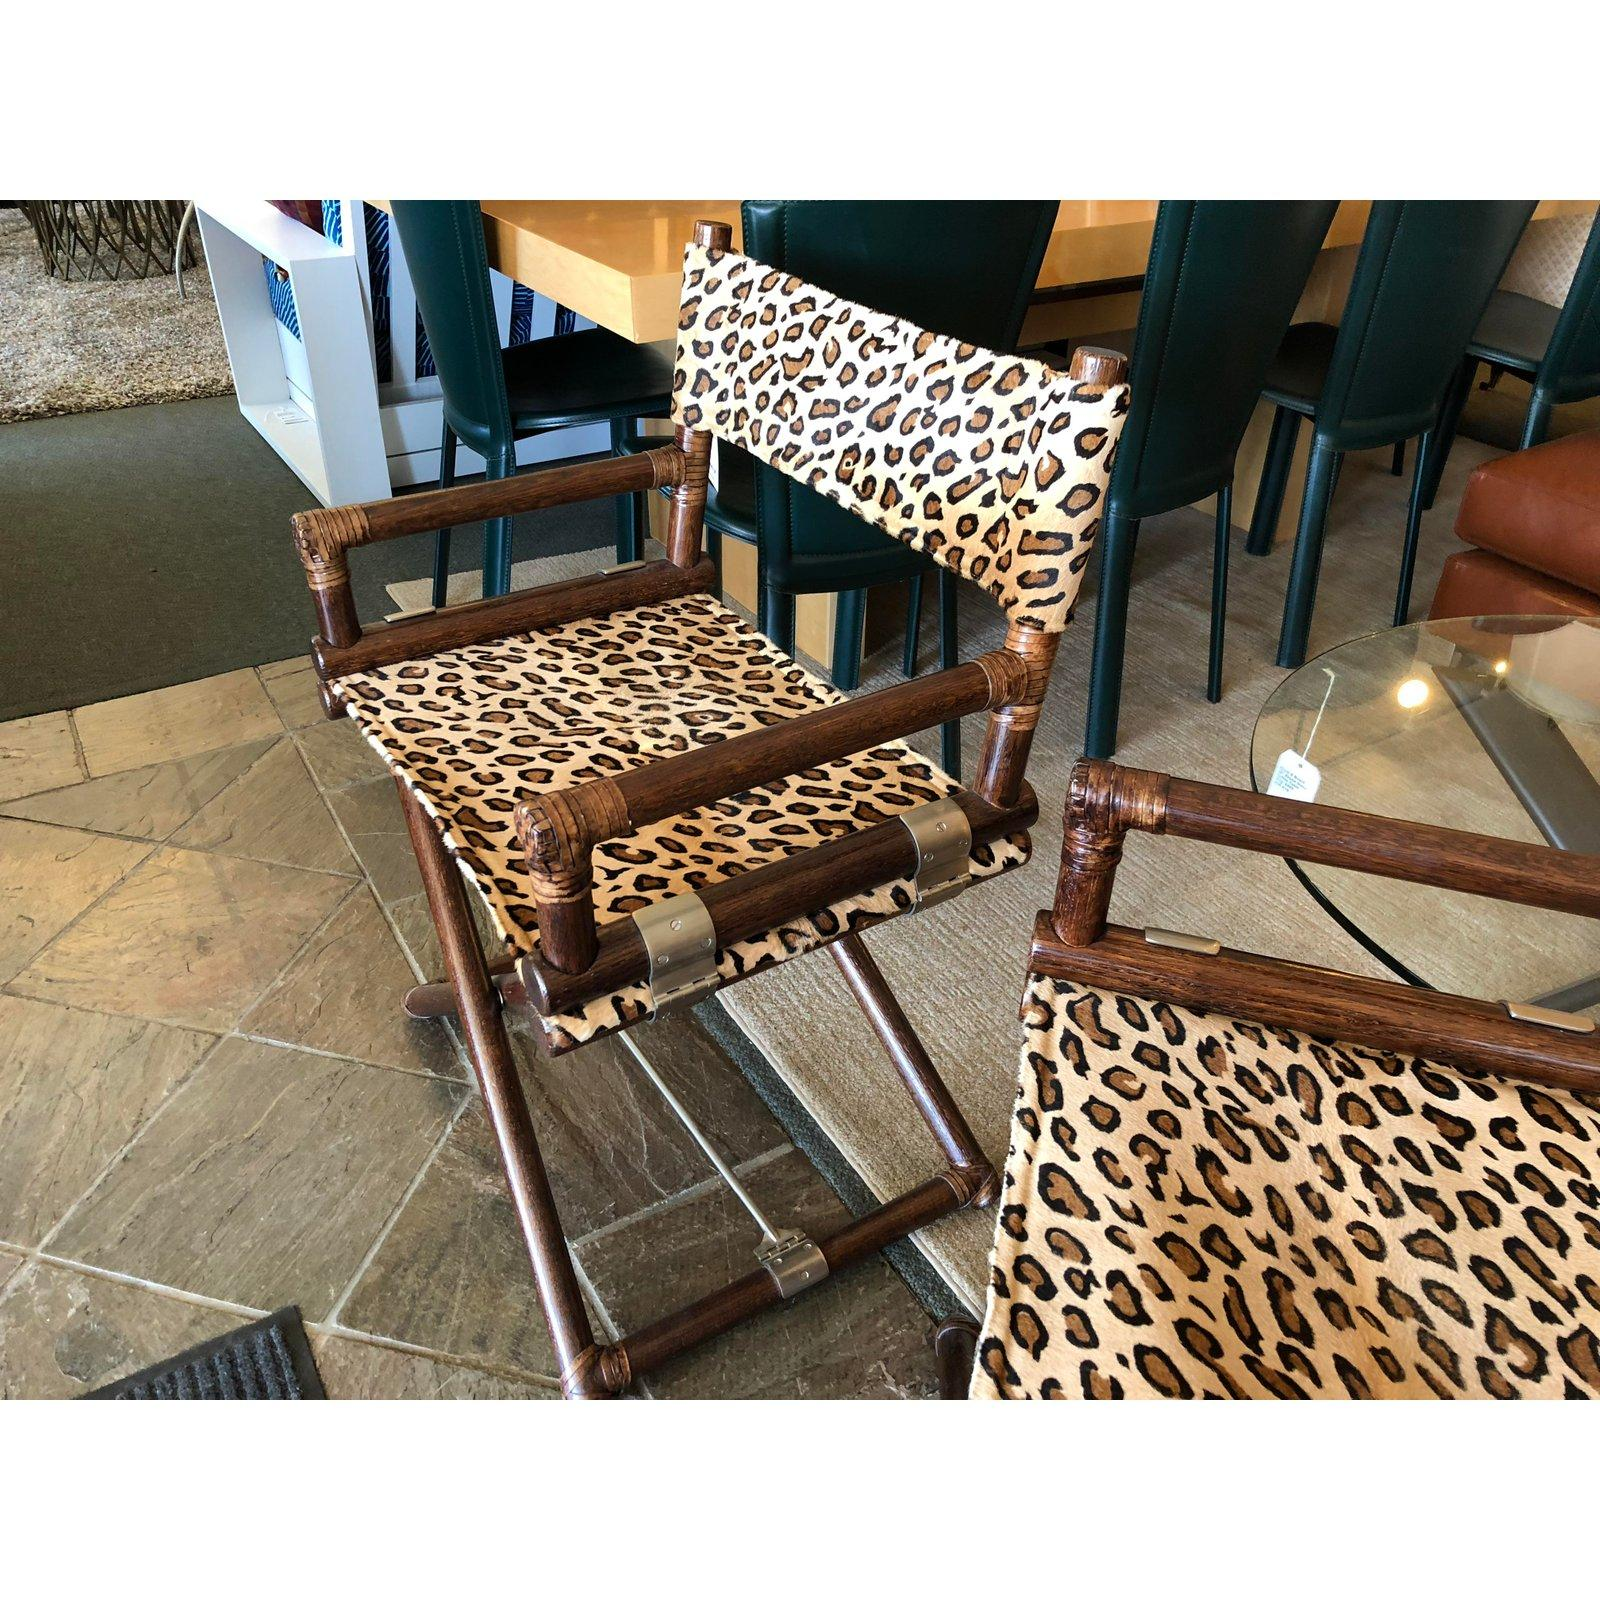 mcguire animal print campaign chairs a pair for sale at 1stdibs rh 1stdibs com